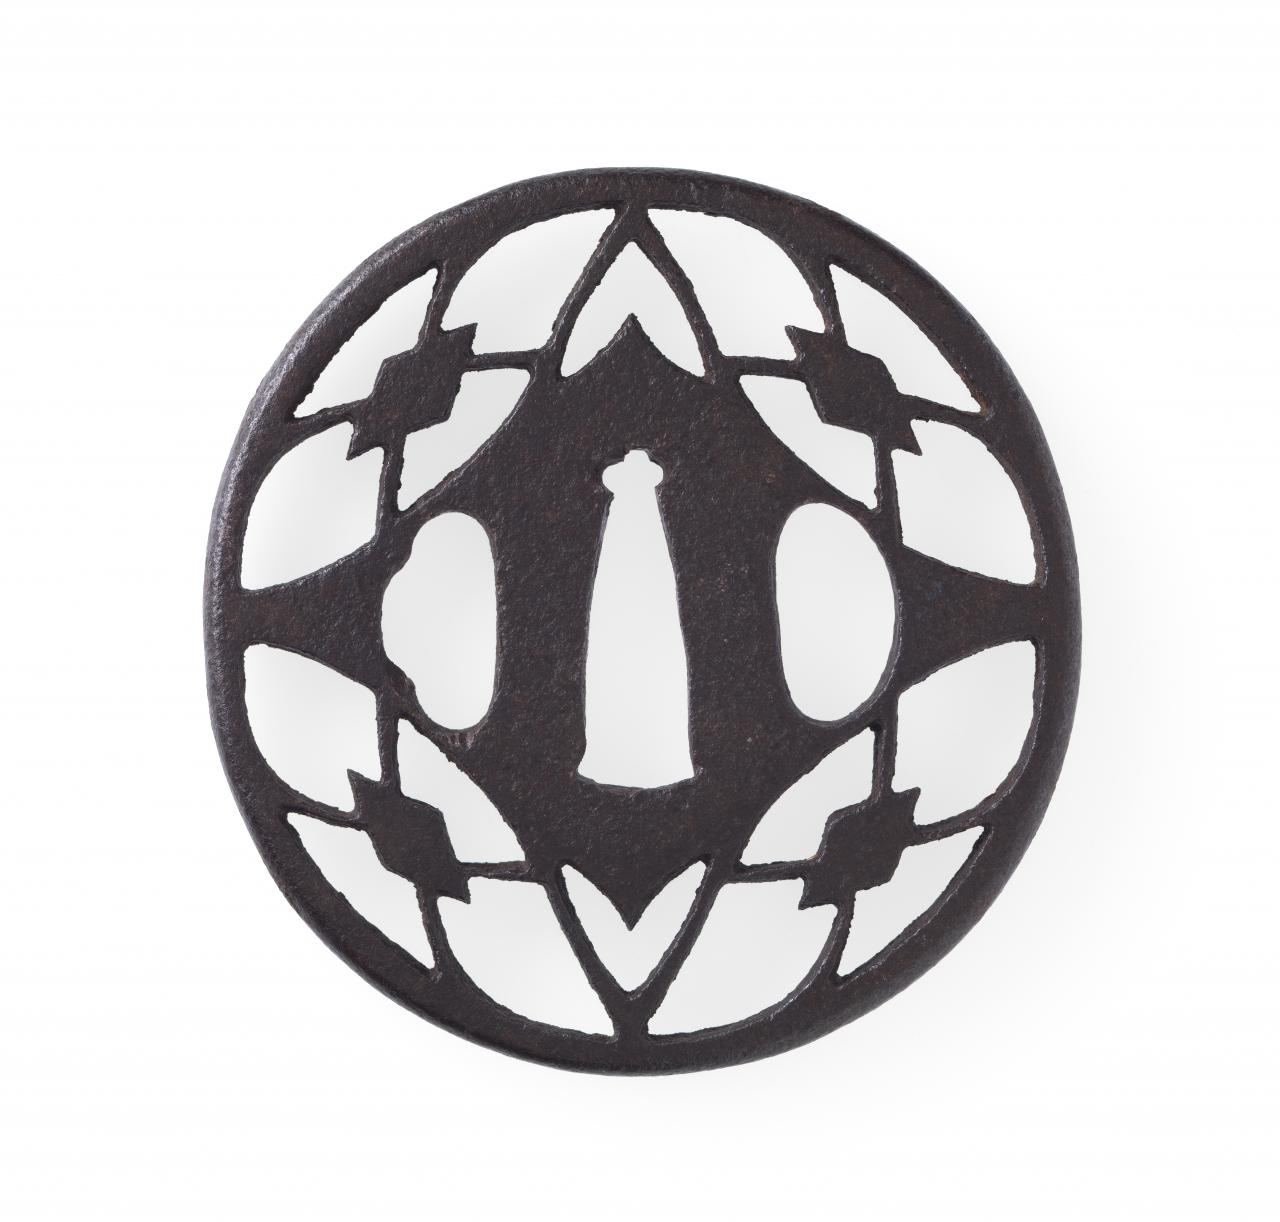 Sword guard with quadruple water chestnut crest design